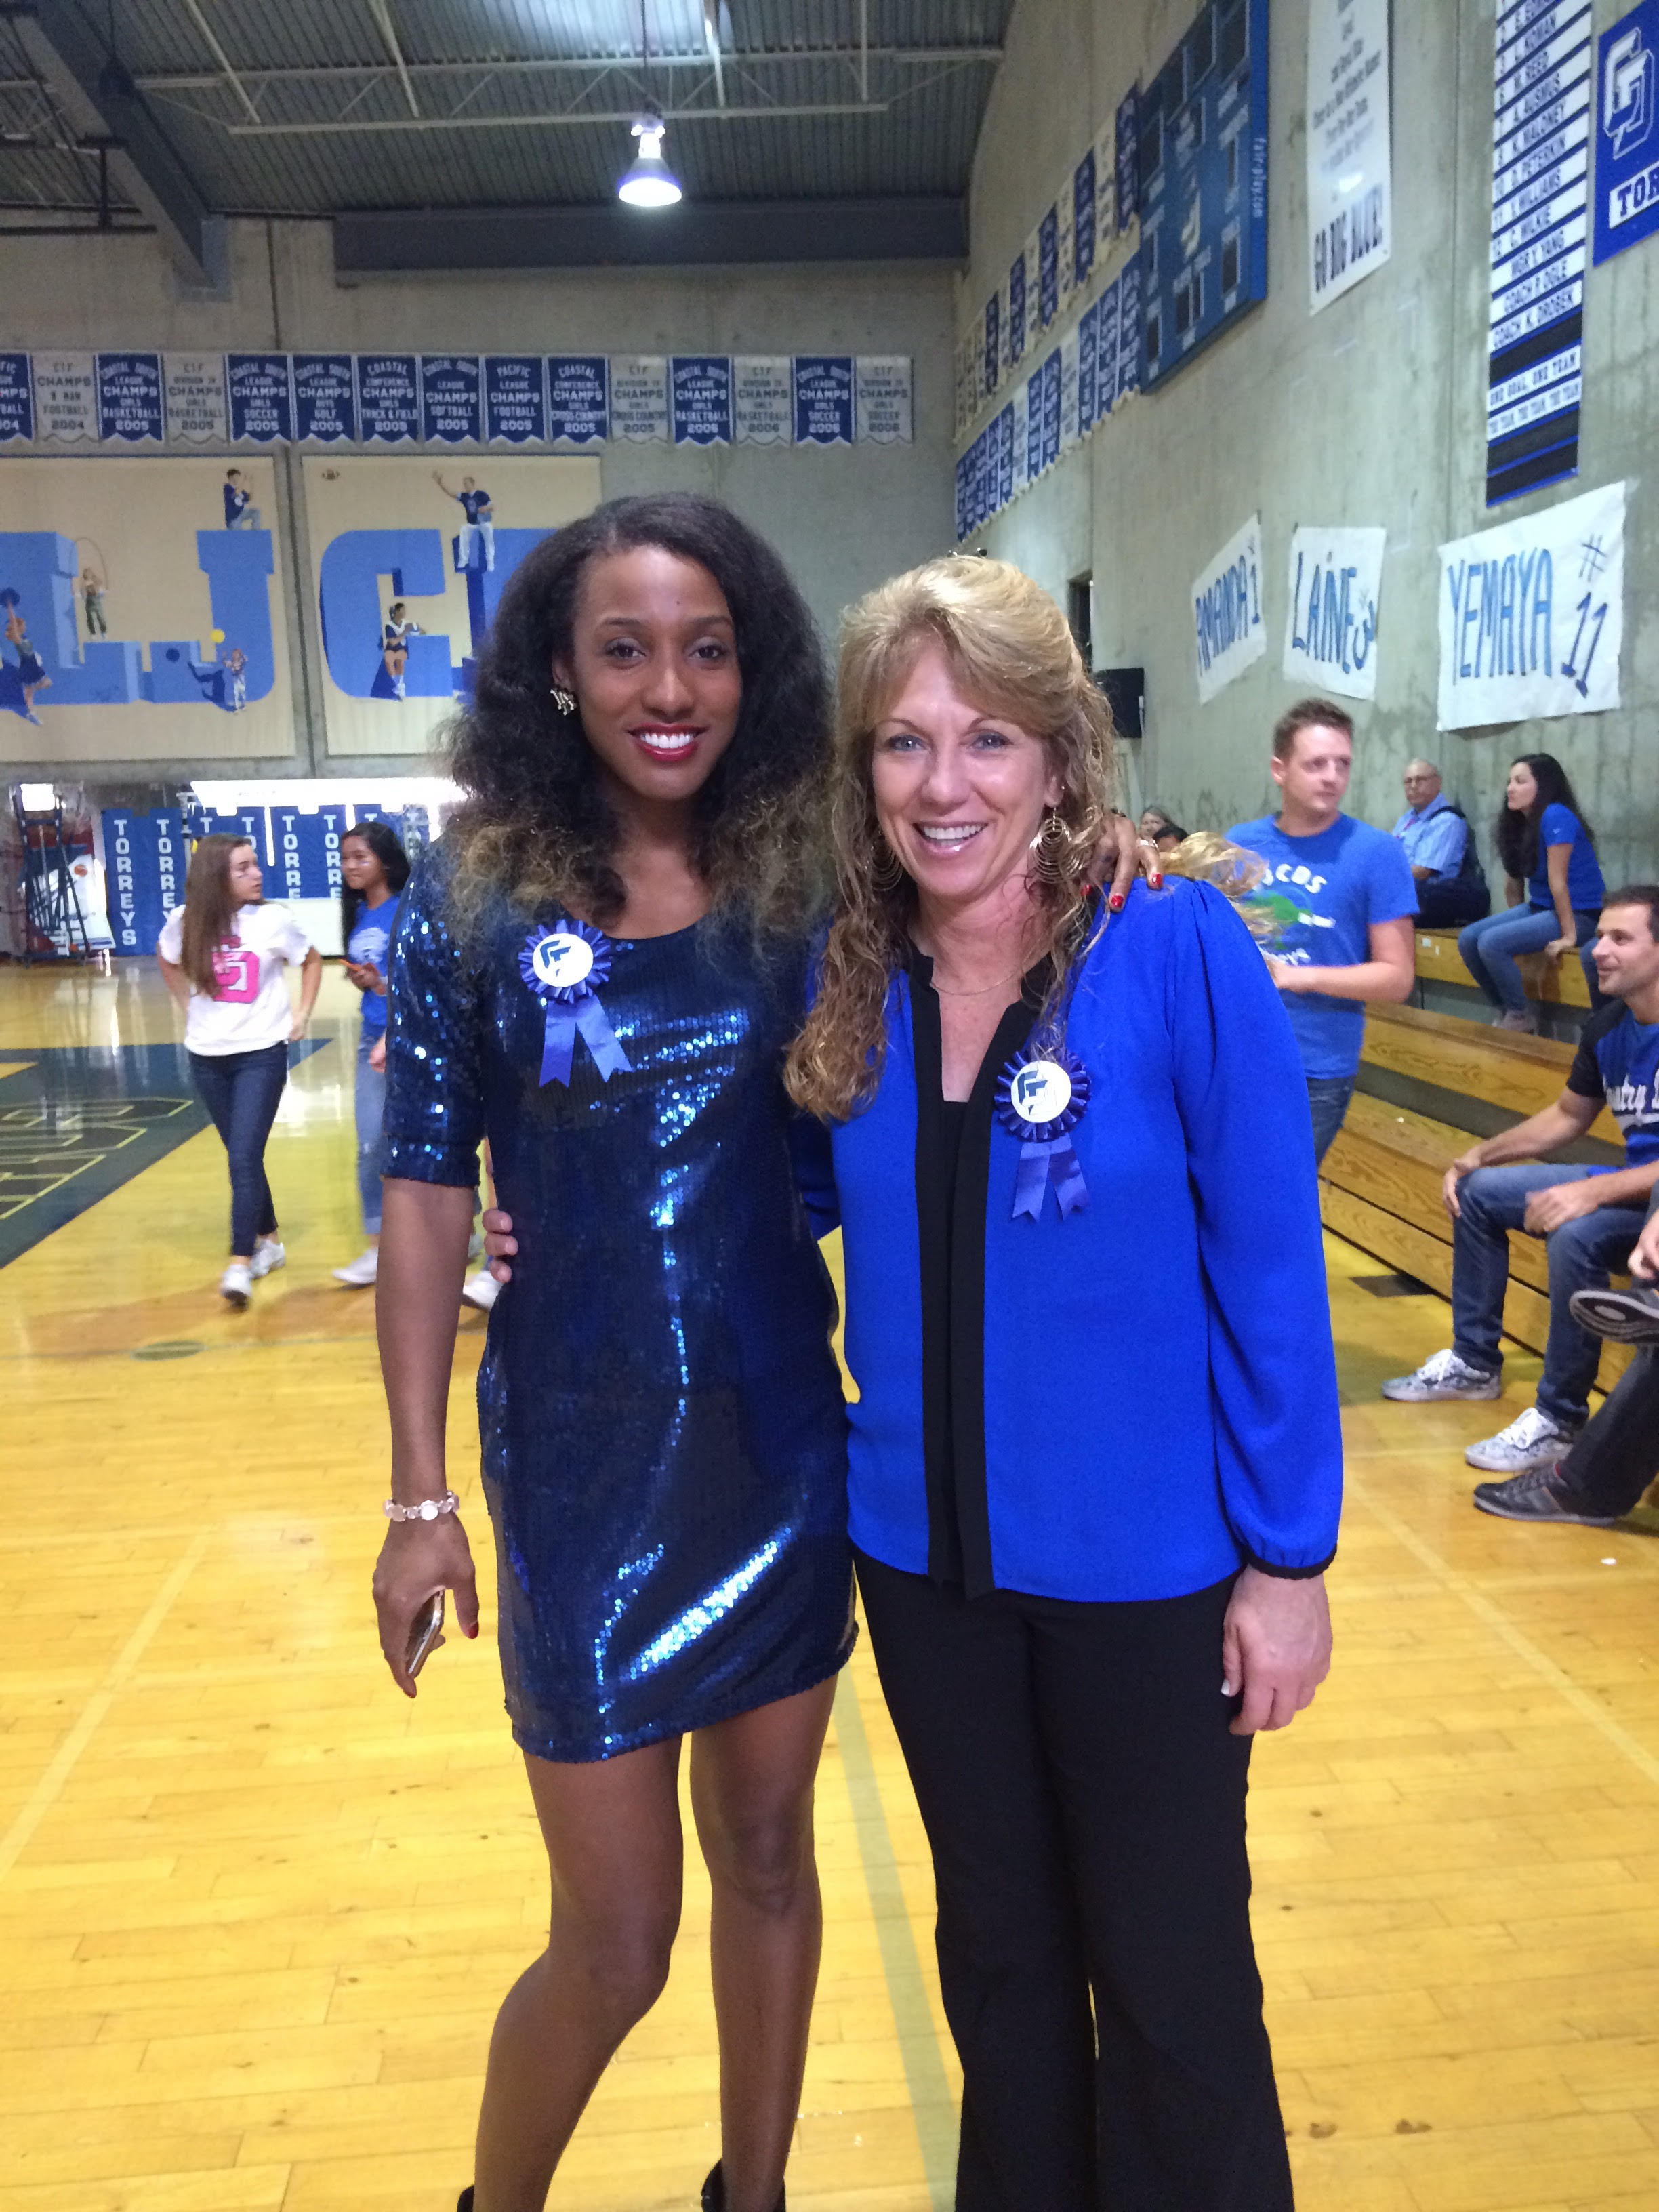 Terri Bamford and I at my high school hall of fame induction, La Jolla Country Day School